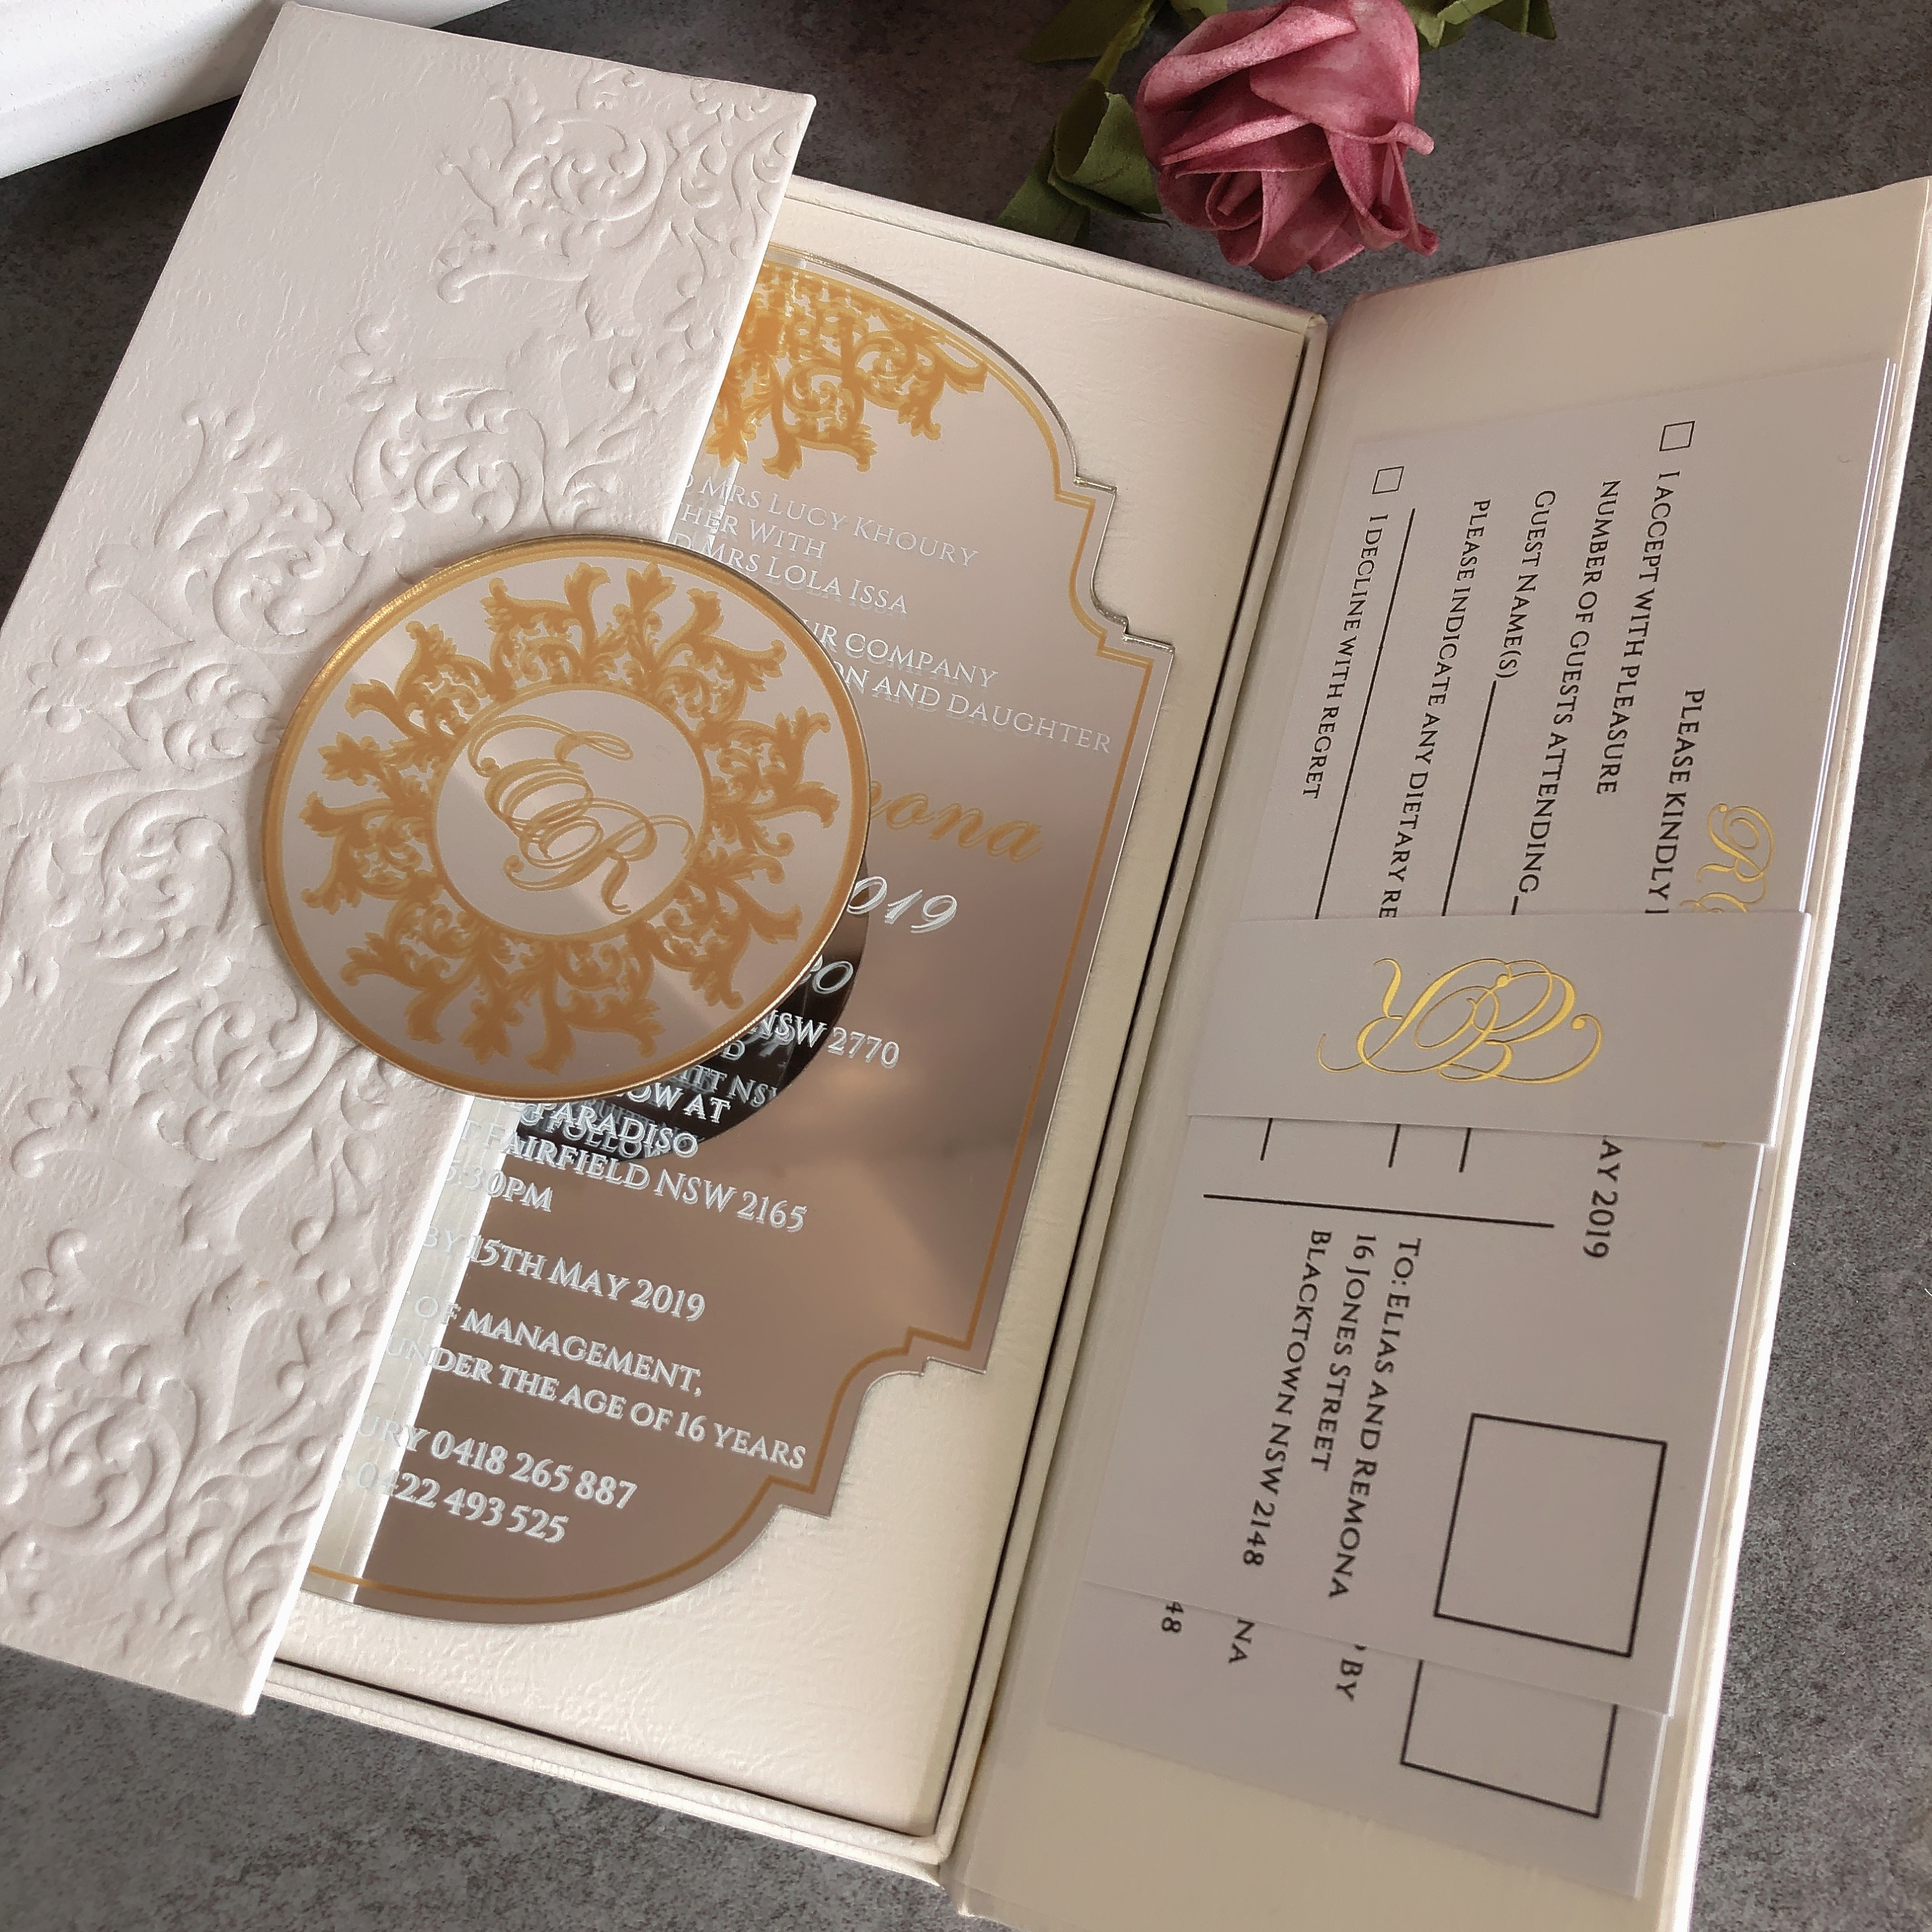 50 Personalized Custom Embossed Wedding invitation cards Luxury Wedding  Invitation cards with boxes|Cards & Invitations| - AliExpress